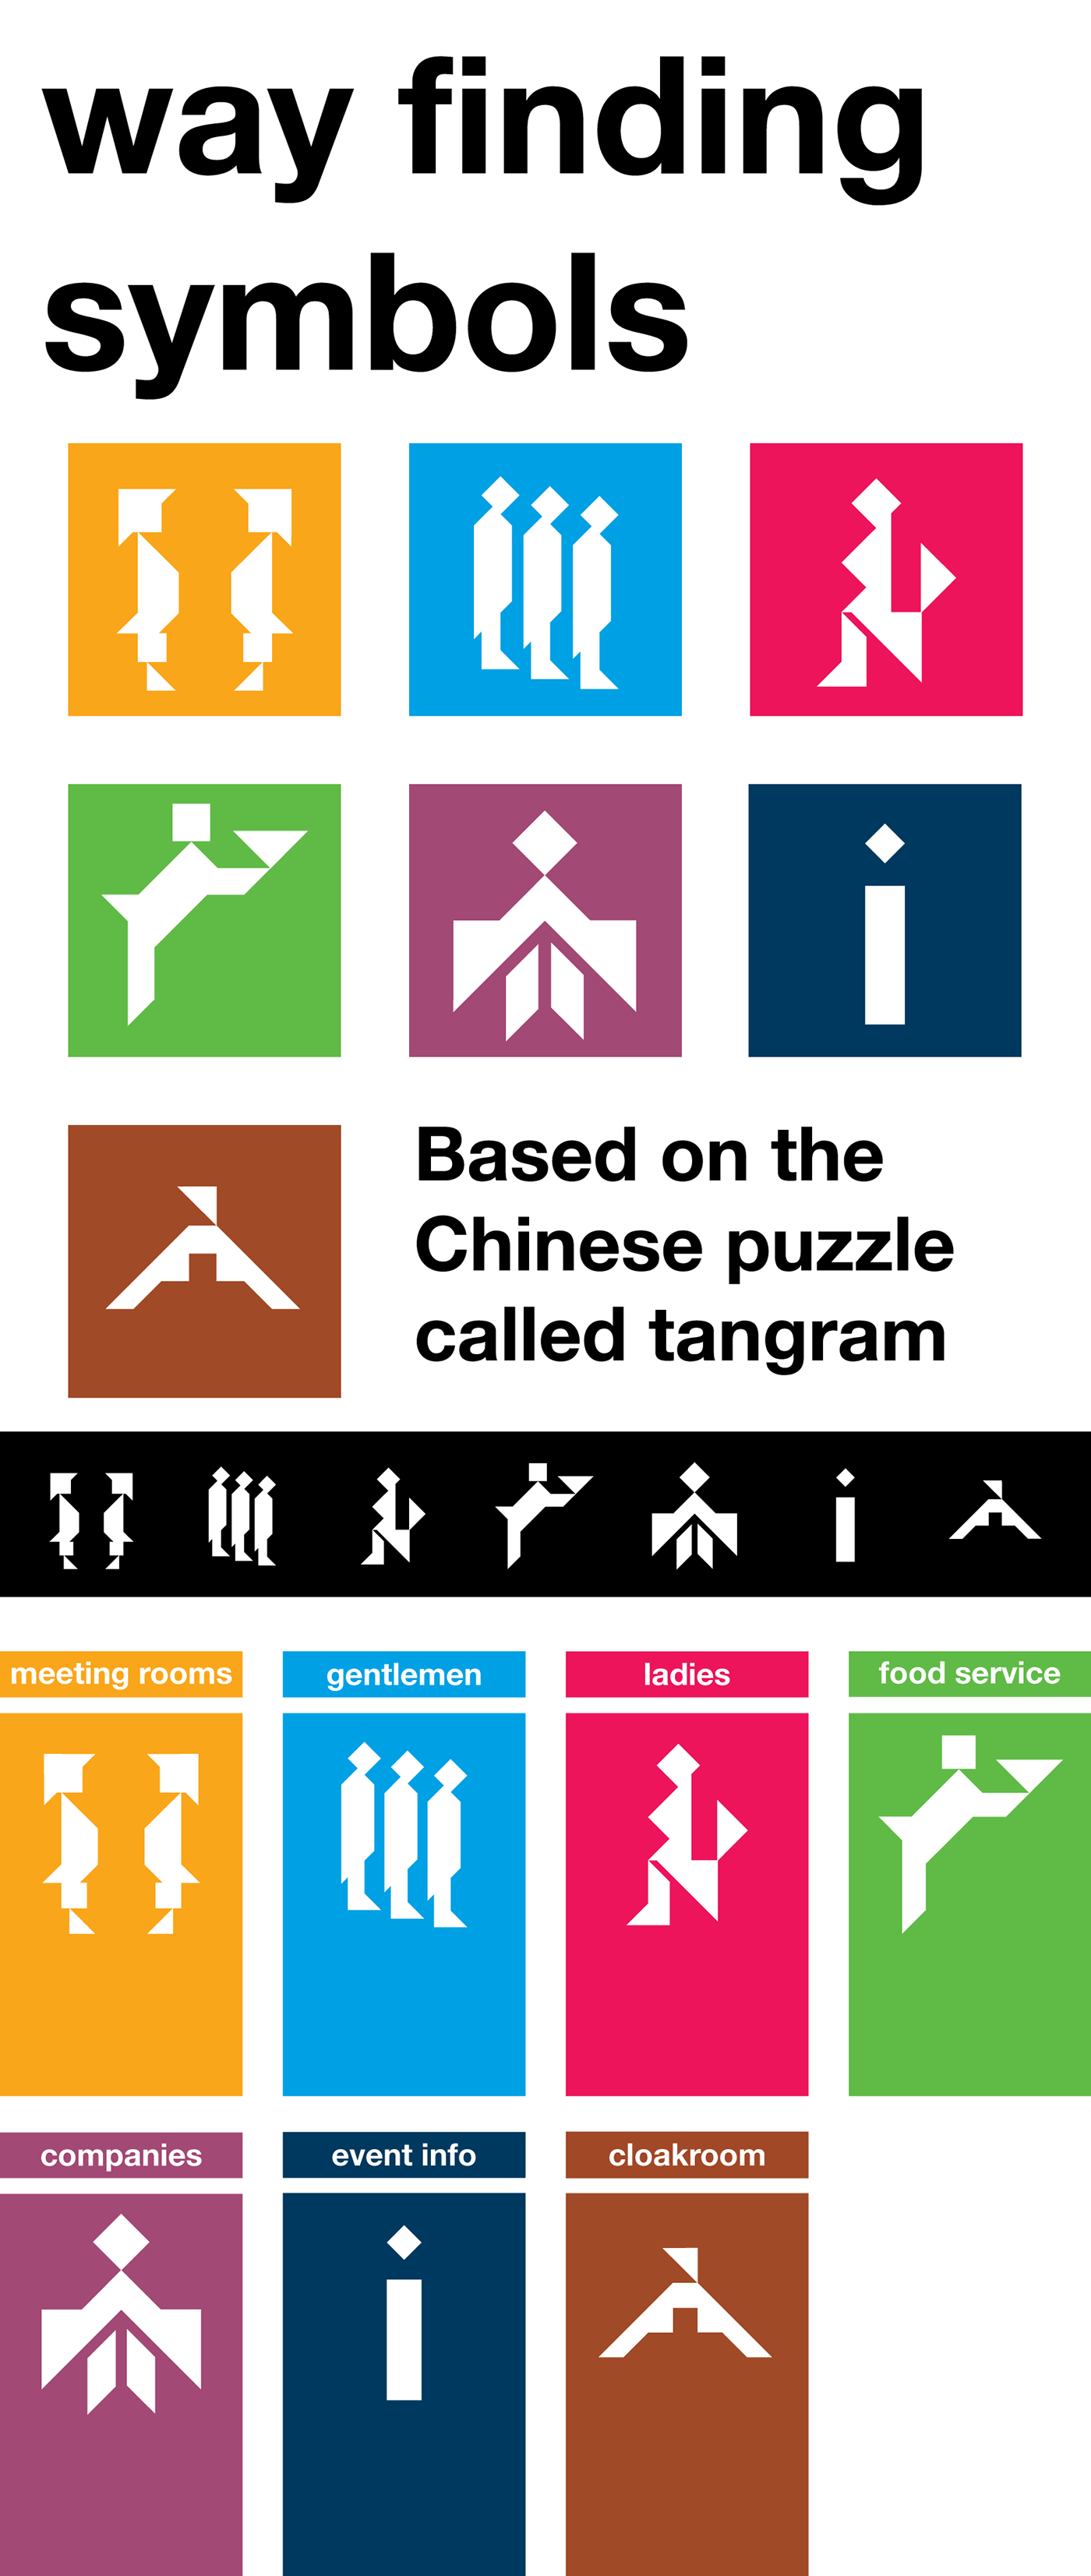 Check Out The More Like This: Wayfinding Symbols On Behance